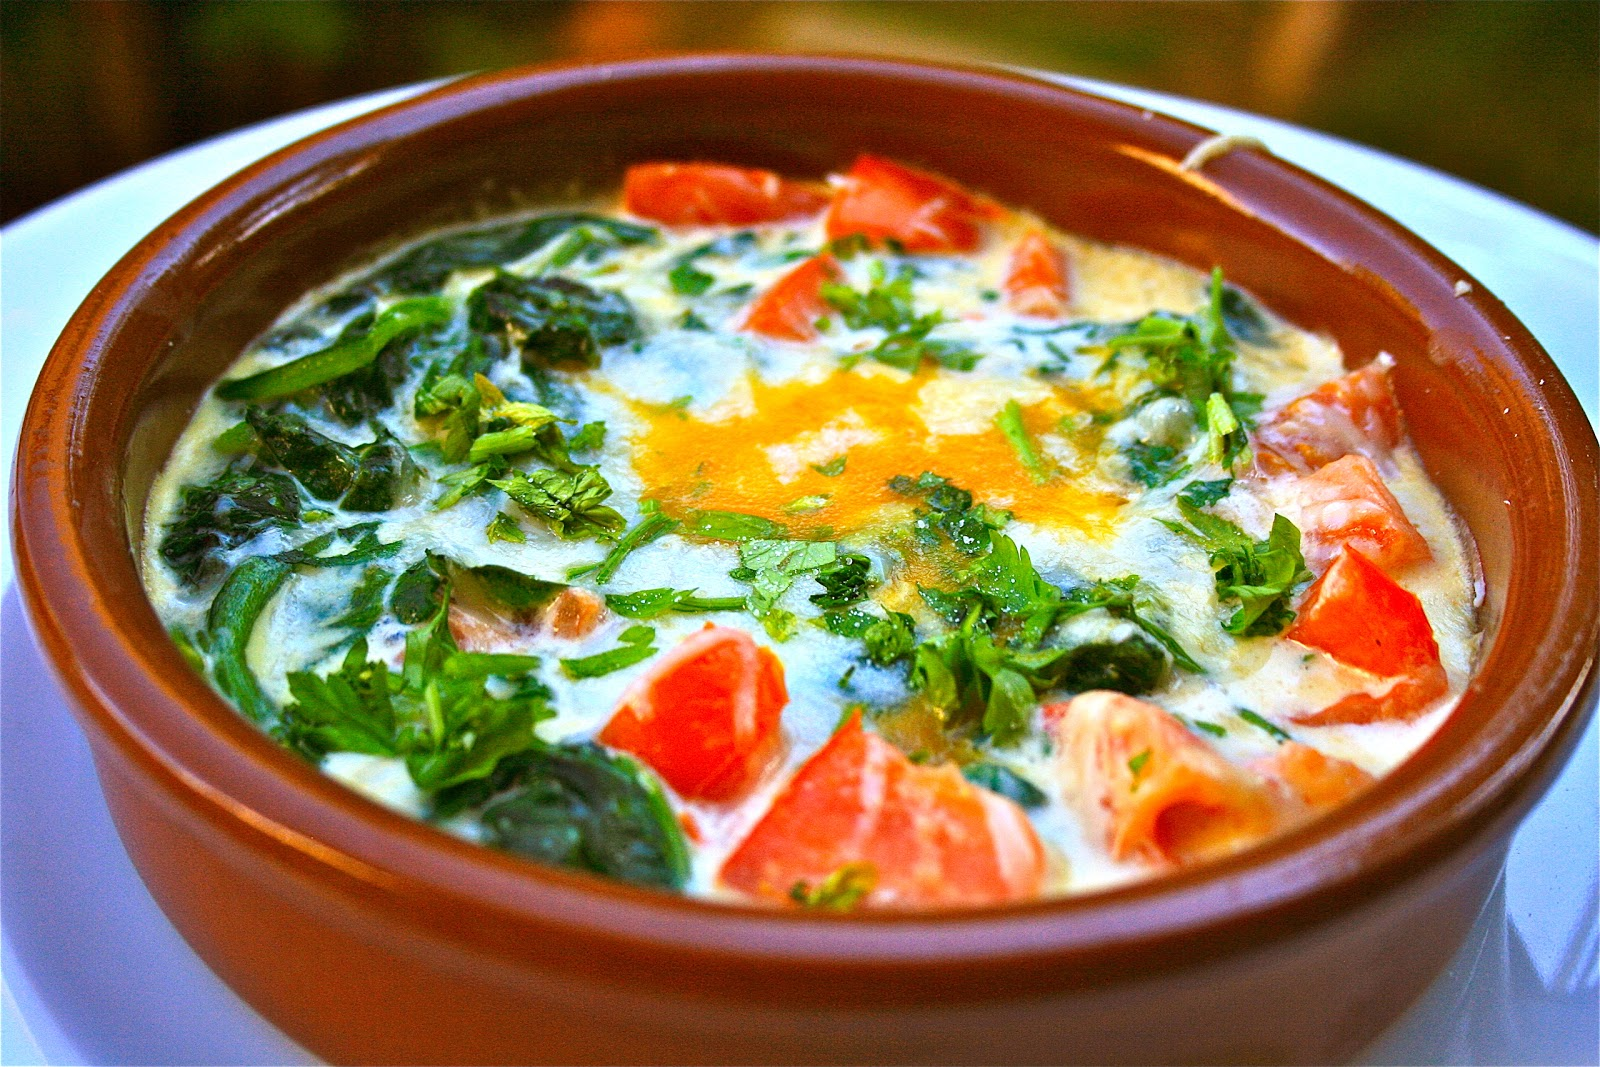 Johnny's Kitchen: Baked Eggs with Spinach Tomato and Parmesan Cream